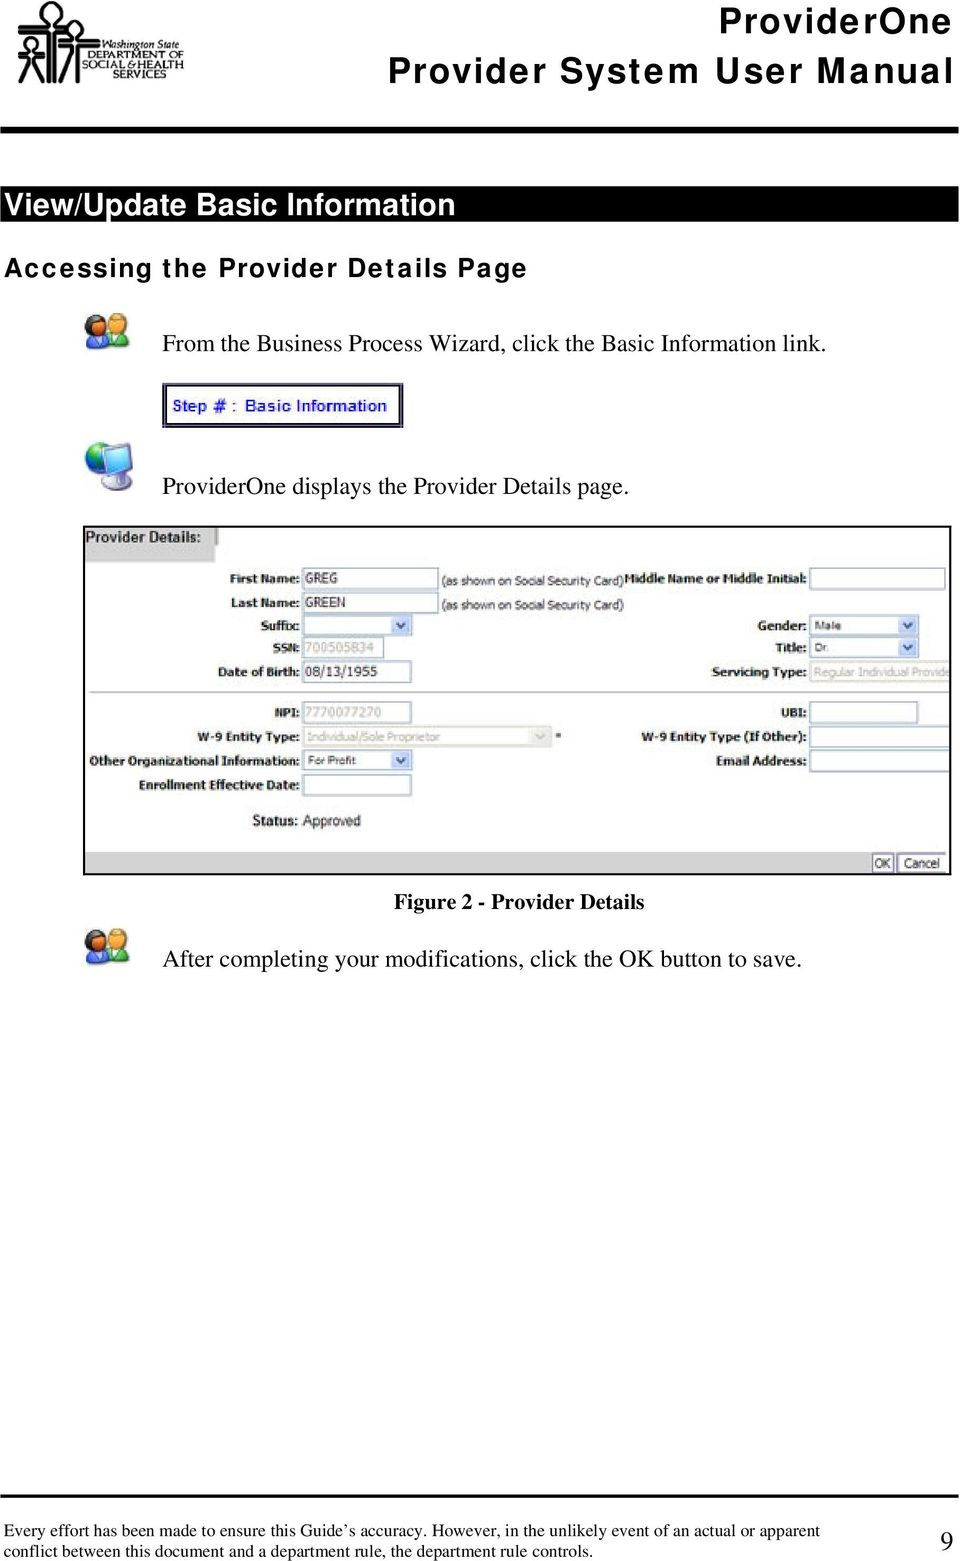 ProviderOne displays the Provider Details page.